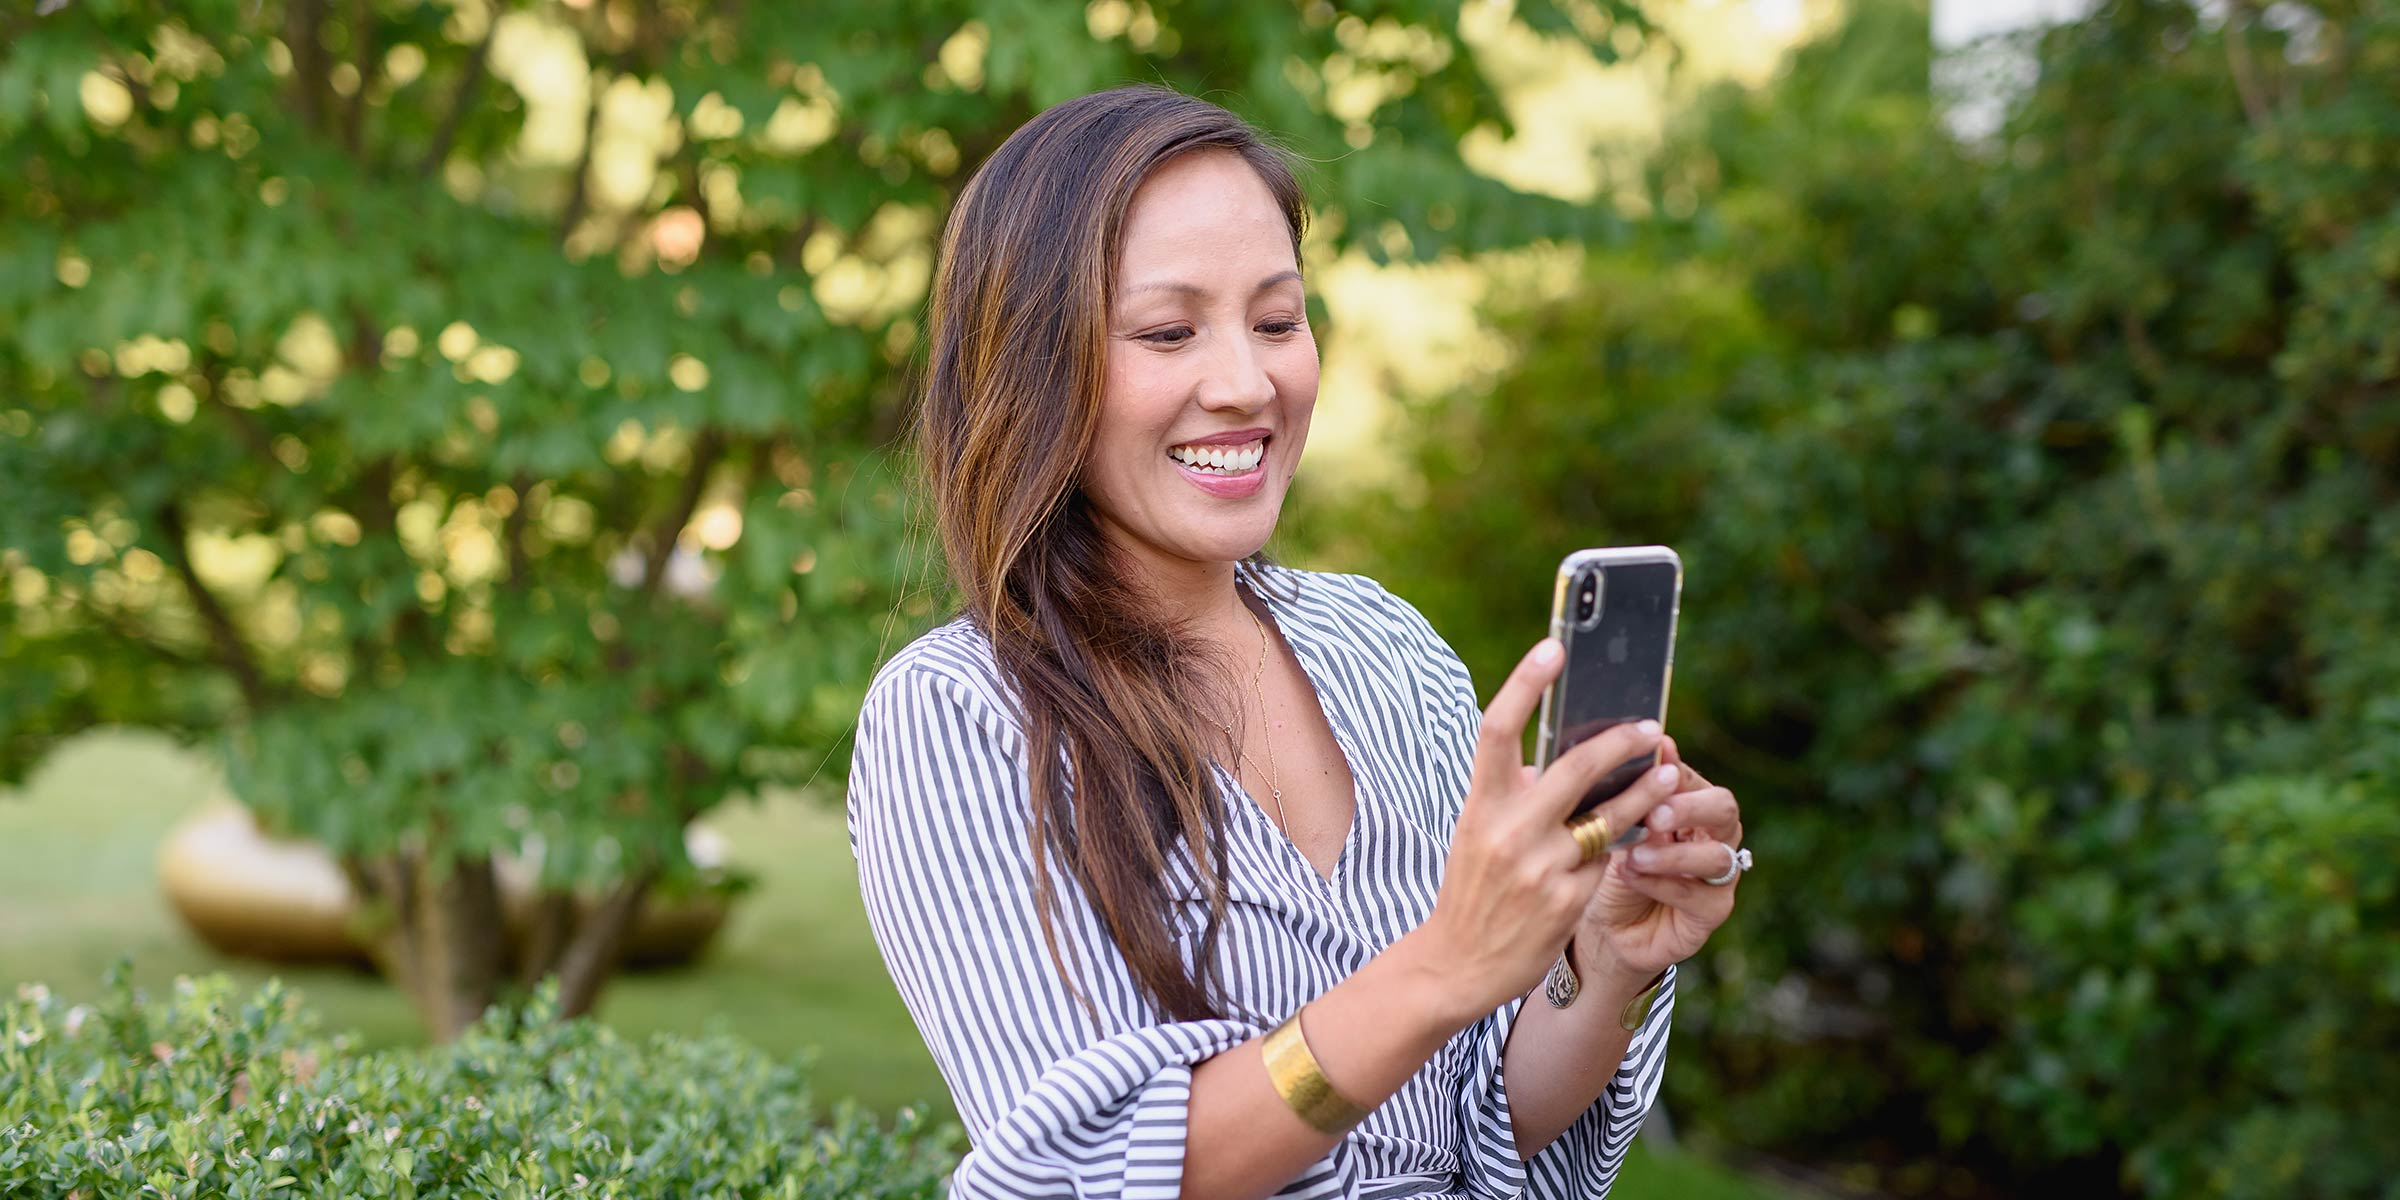 Image of an entrepreneur taking a photograph for her Instagram feed. Personal Branding portrait by N. Lalor Photography.